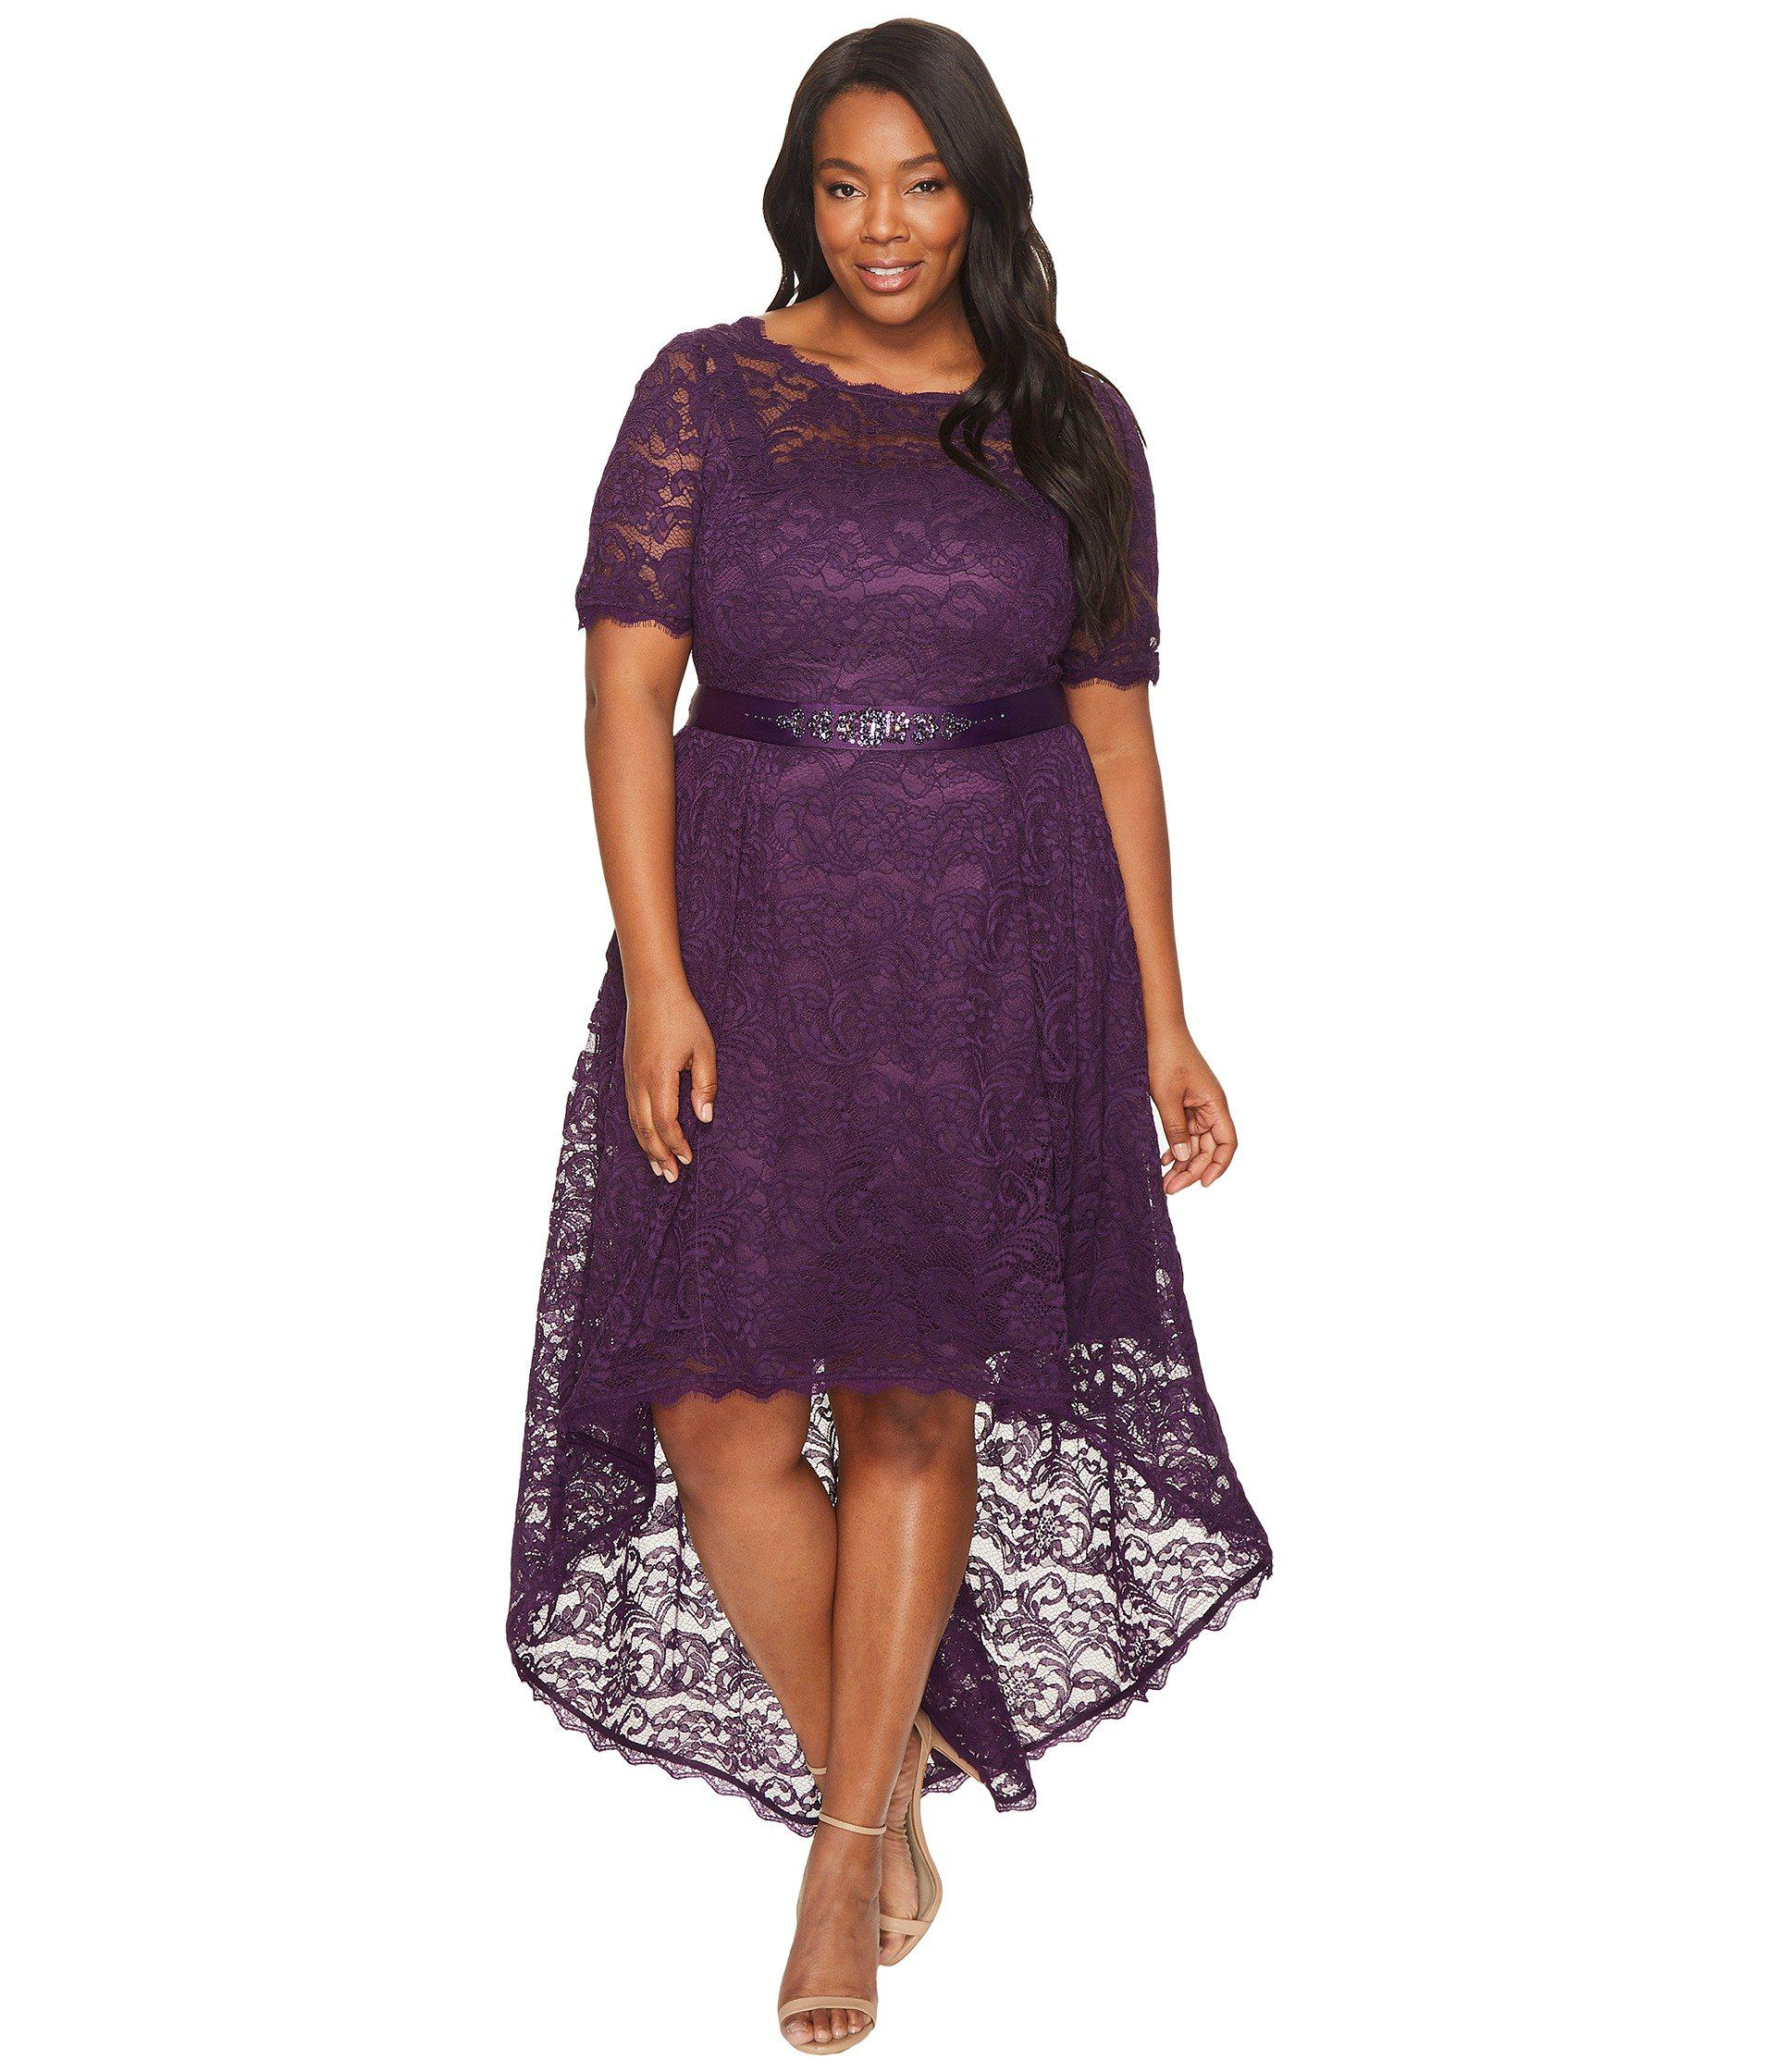 69eaf8ec6c4 Lyst - Adrianna Papell Plus Size Short Sleeve Lace Dress With High ...